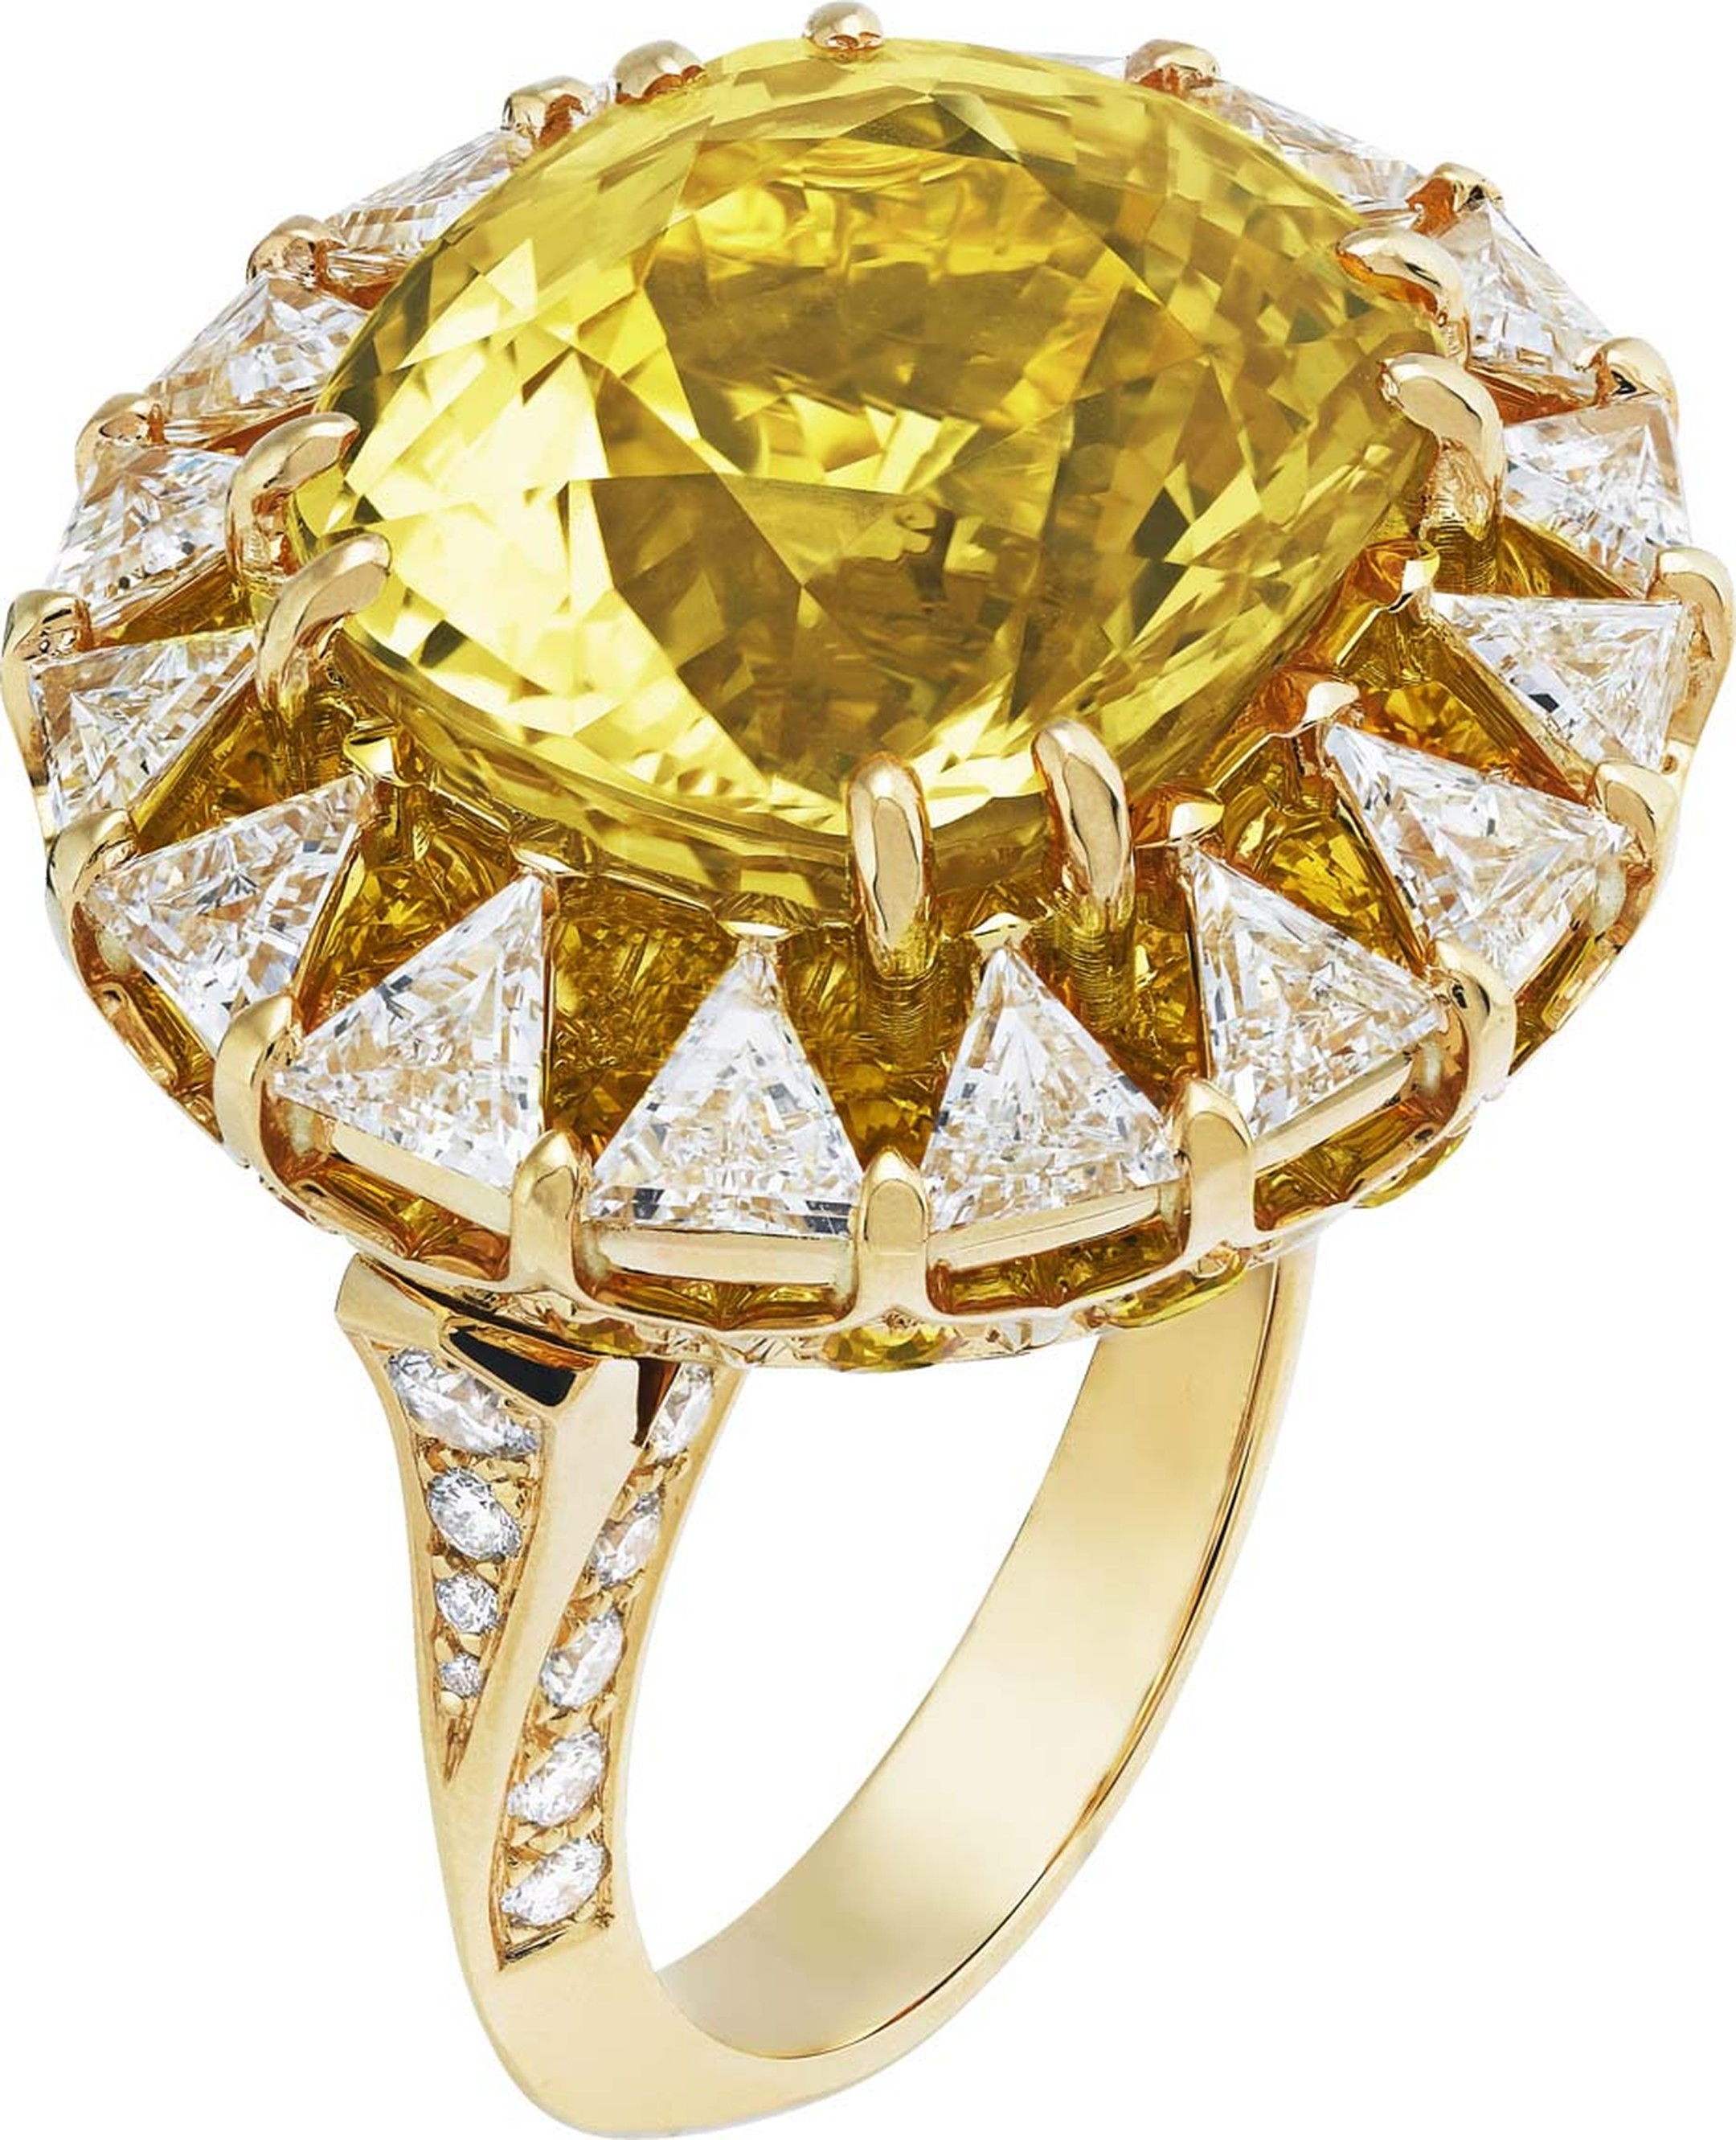 Van Cleef & Arpels Peau d'Ane Happy Marriage collection Solar ring in yellow gold with a central 16ct cushion-cut yellow sapphire, round and trillion-cut diamands and round yellow sapphires.